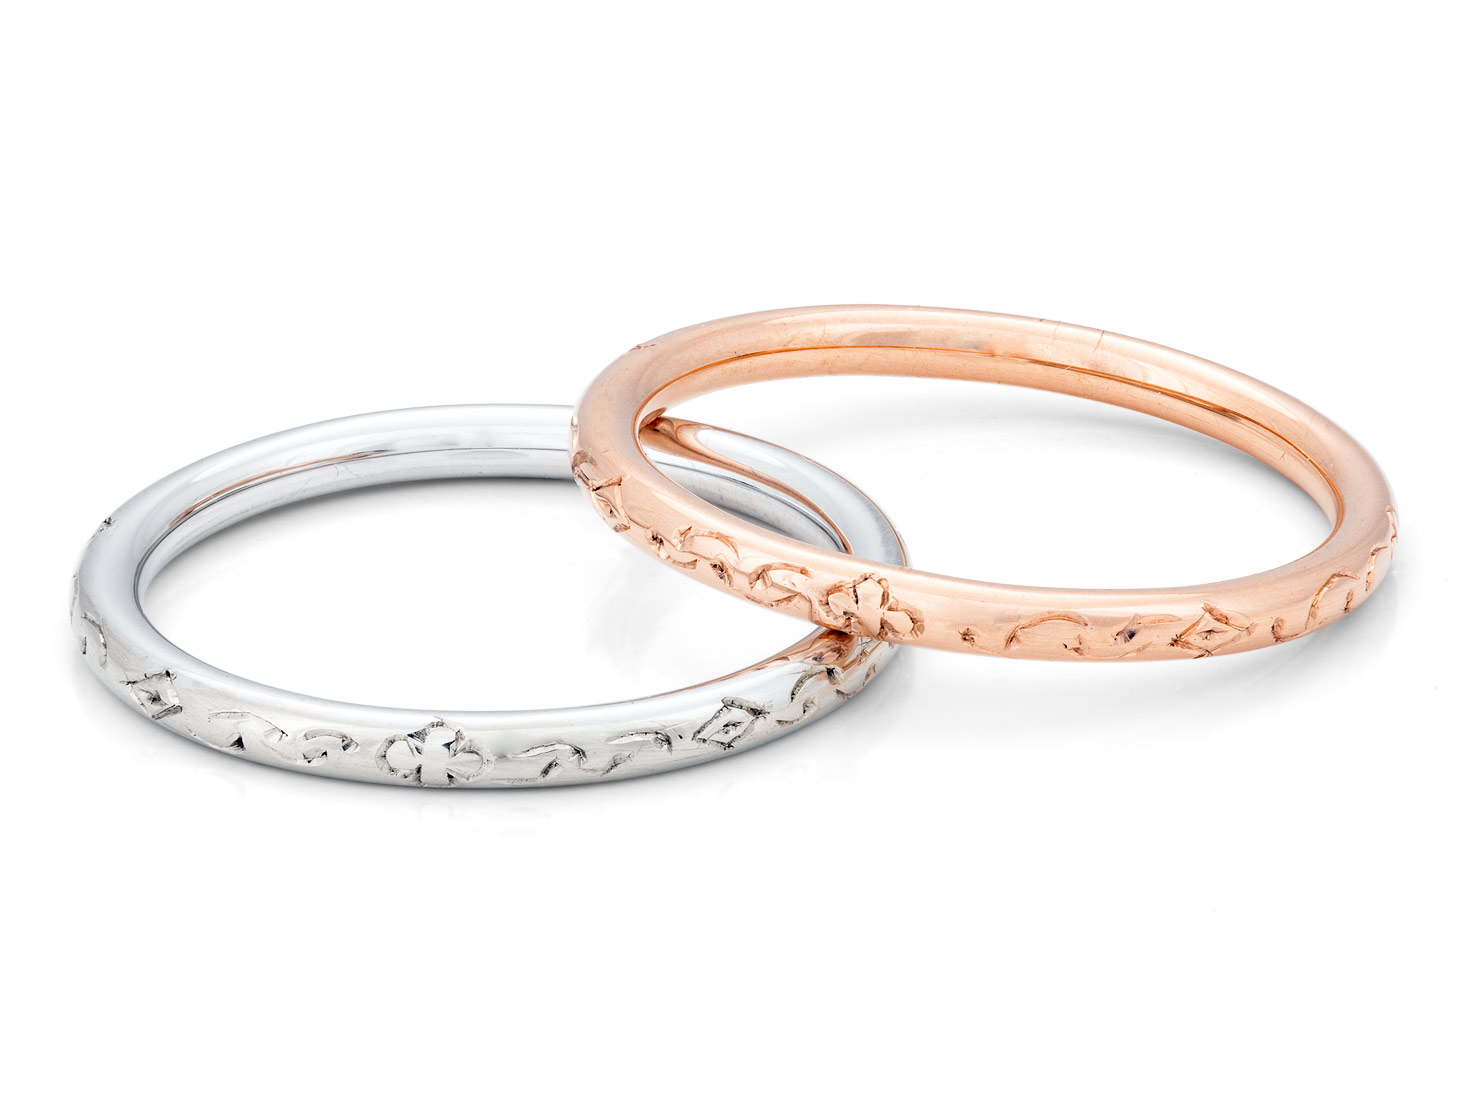 bella italia bridal bands